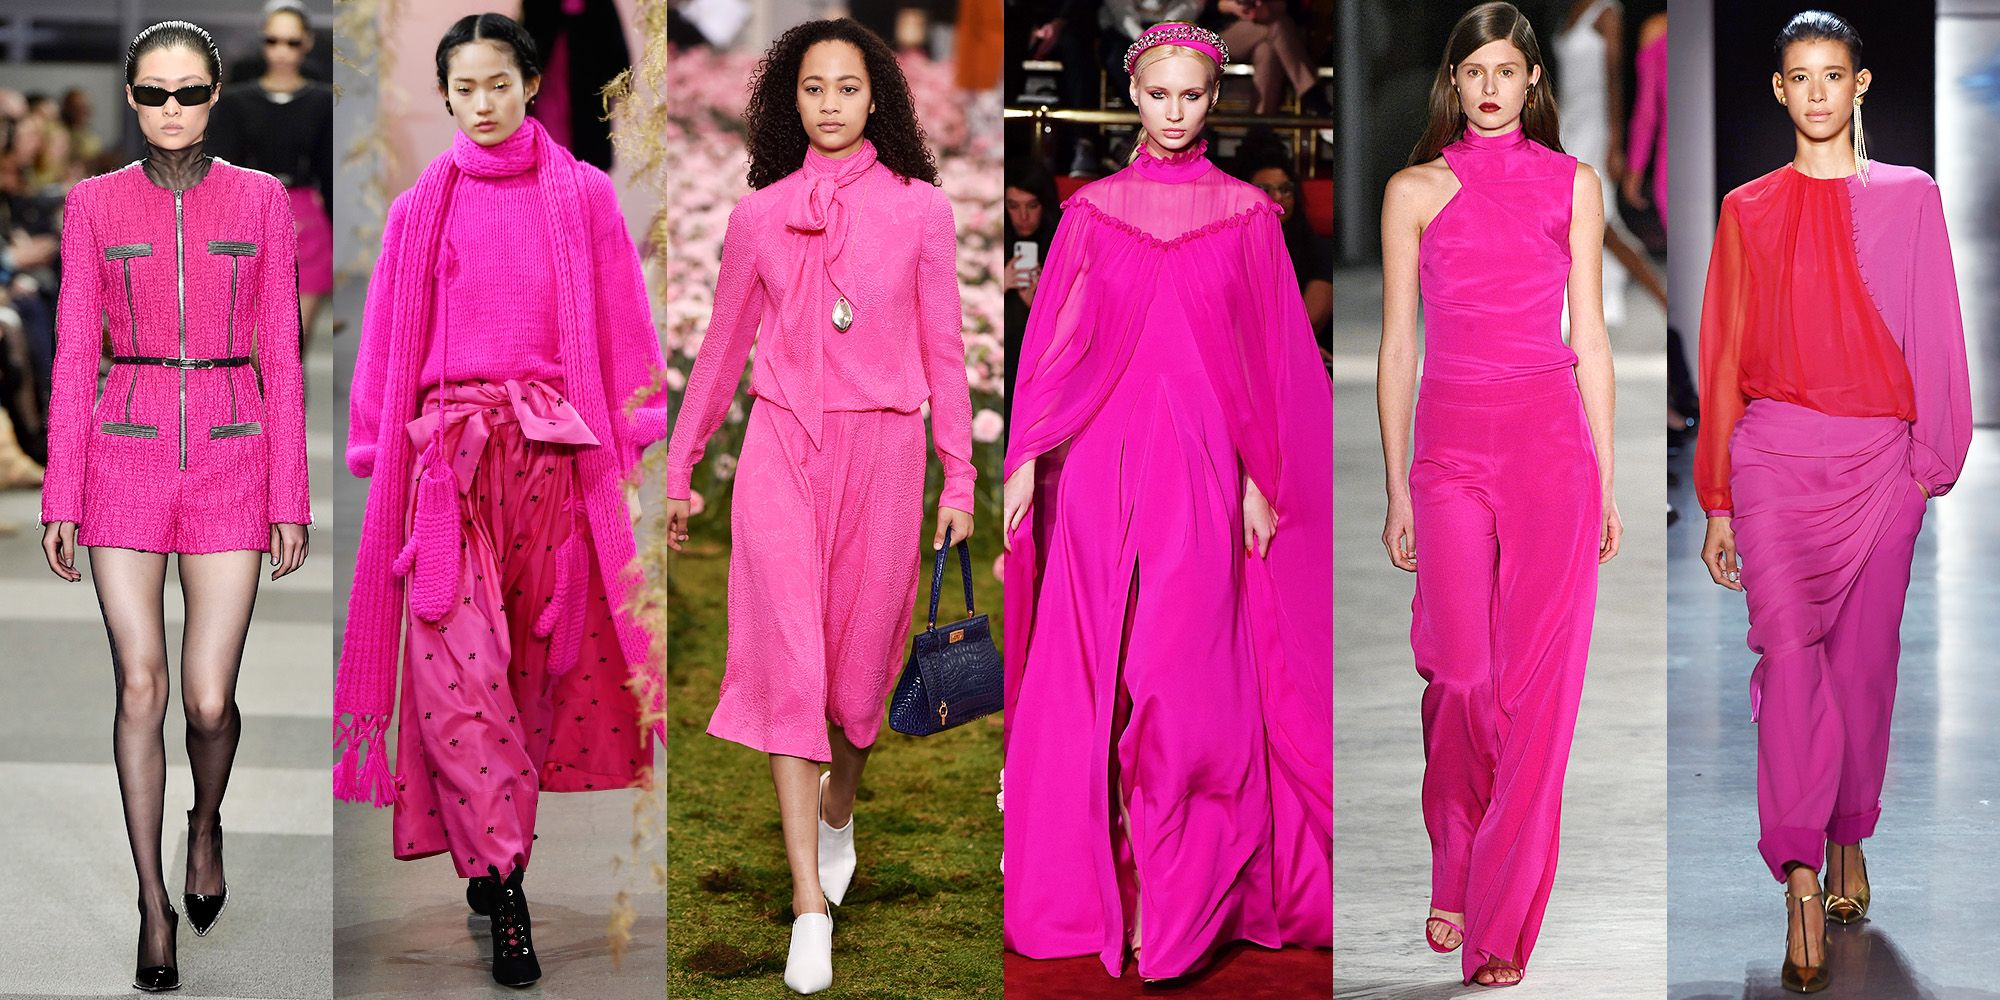 Image result for pink womens fashion